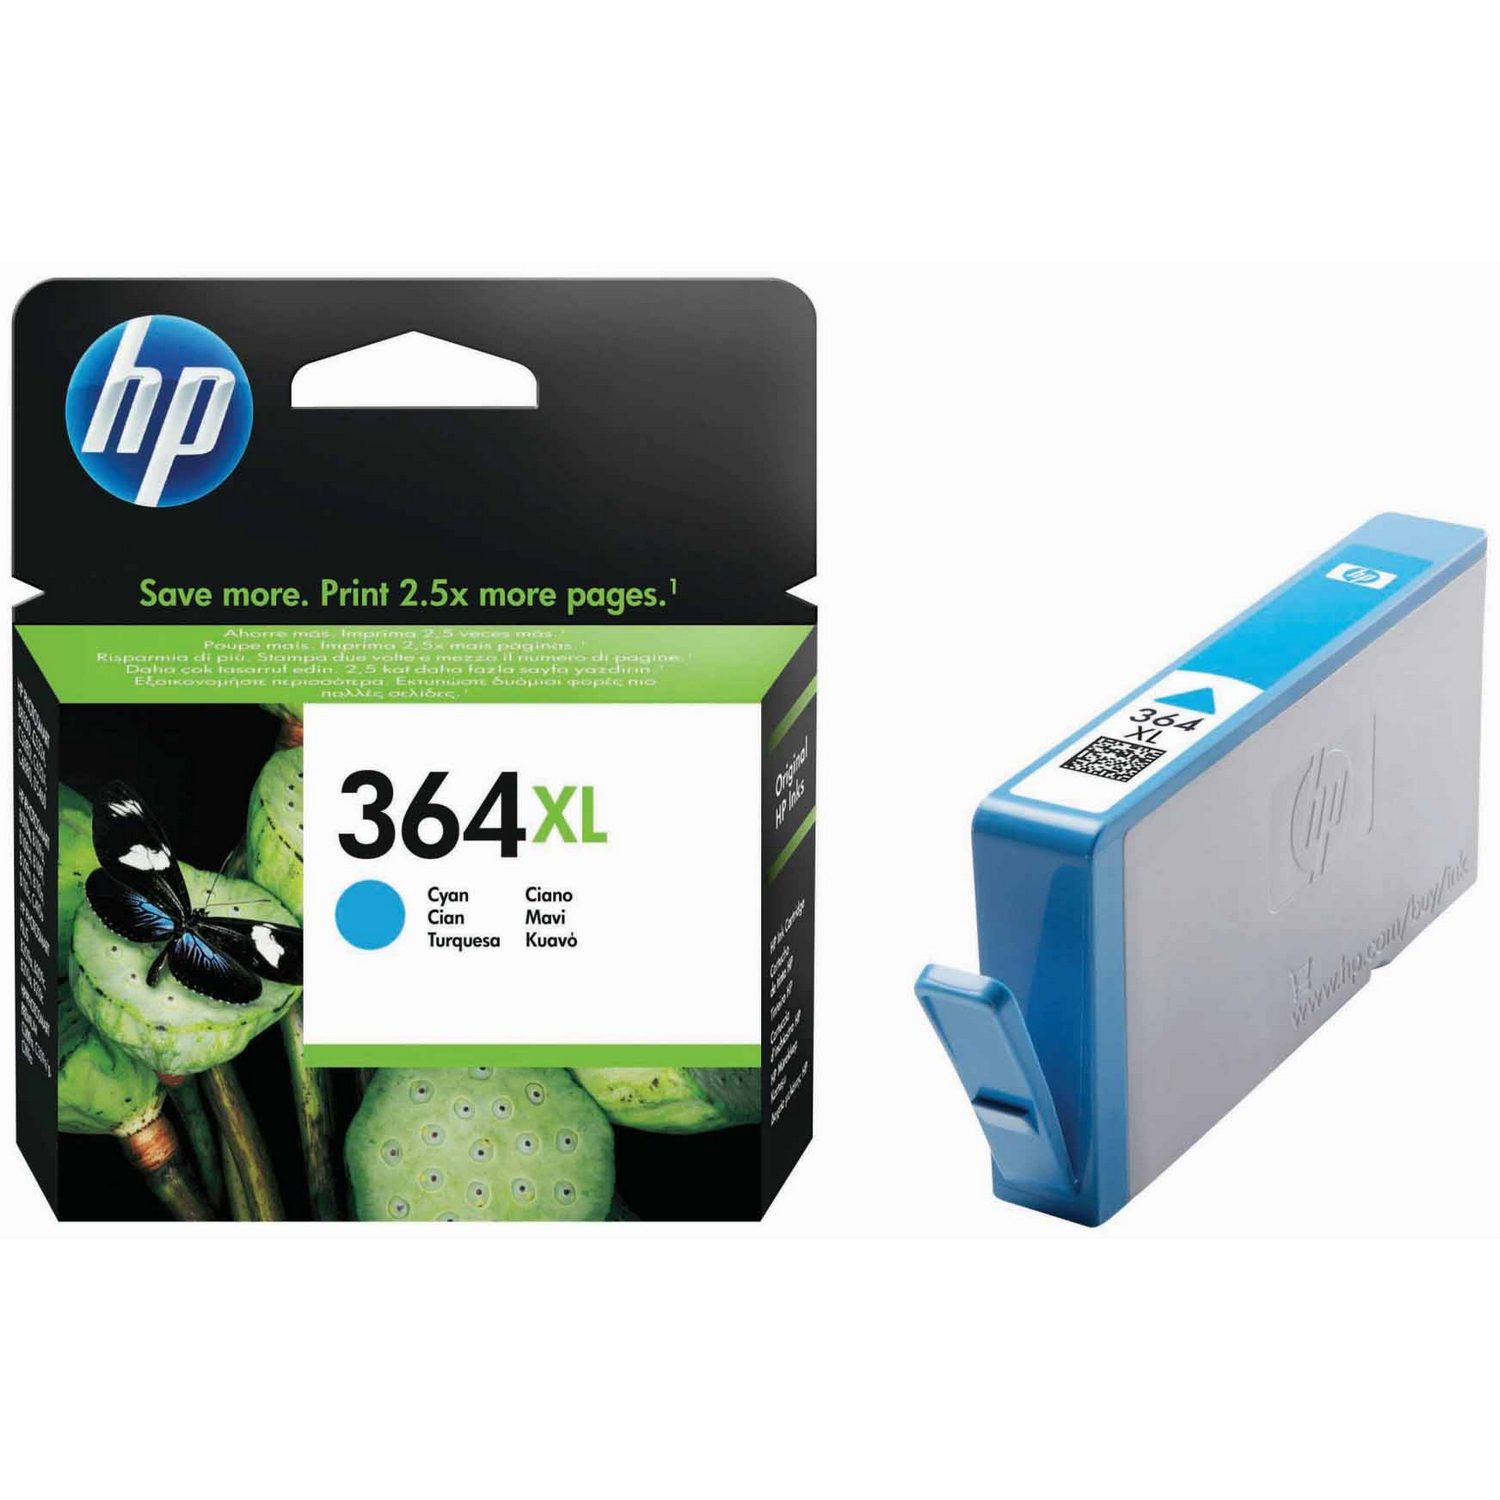 Original HP 364XL Cyan High Capacity Ink Cartridge (CB323EE)